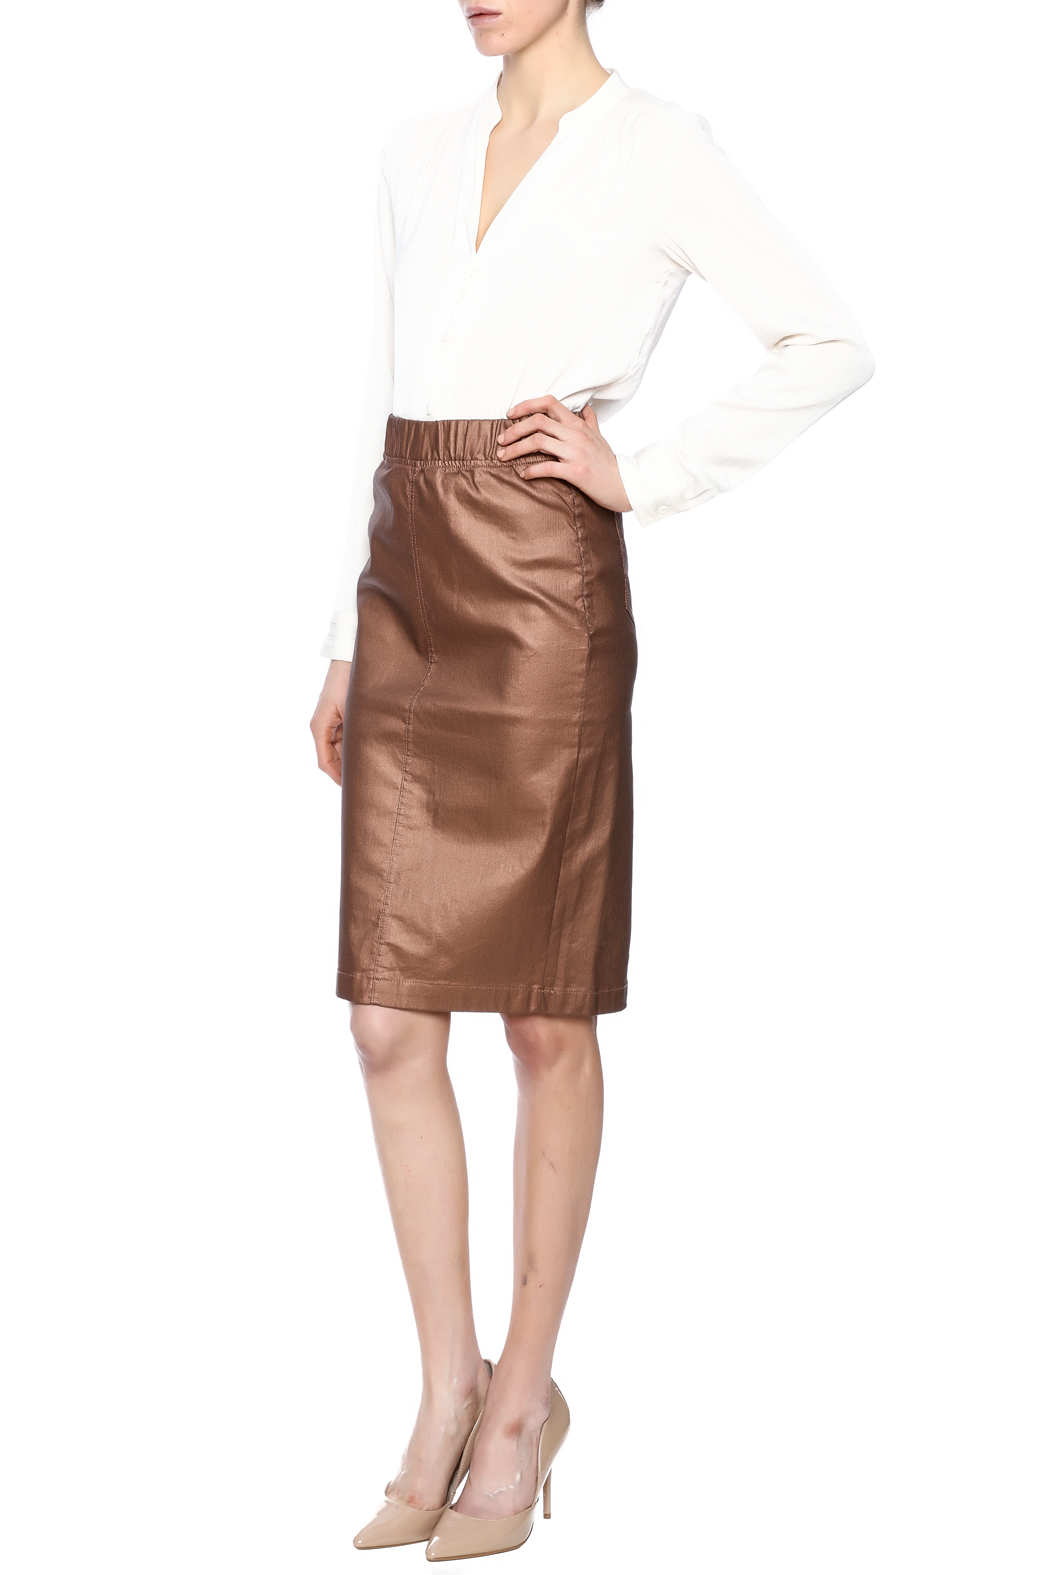 Kikiriki Metallic Jean Pencil Skirt - Front Full Image